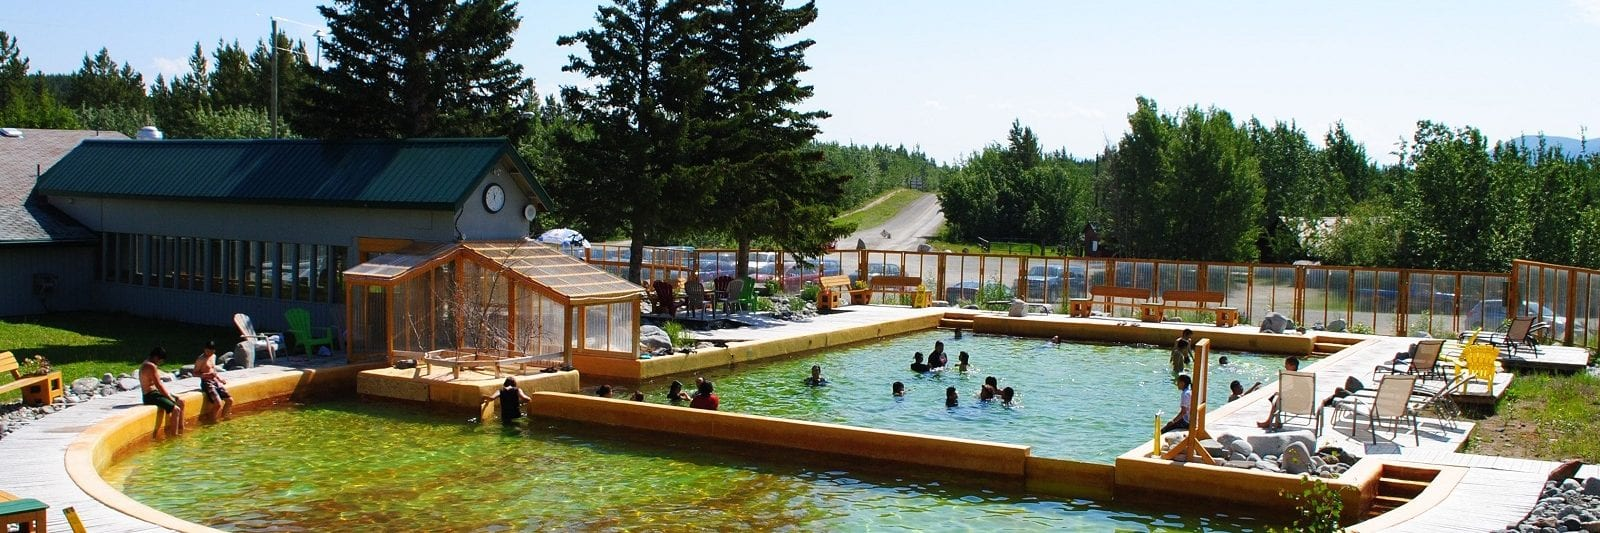 Takhini Hot Springs